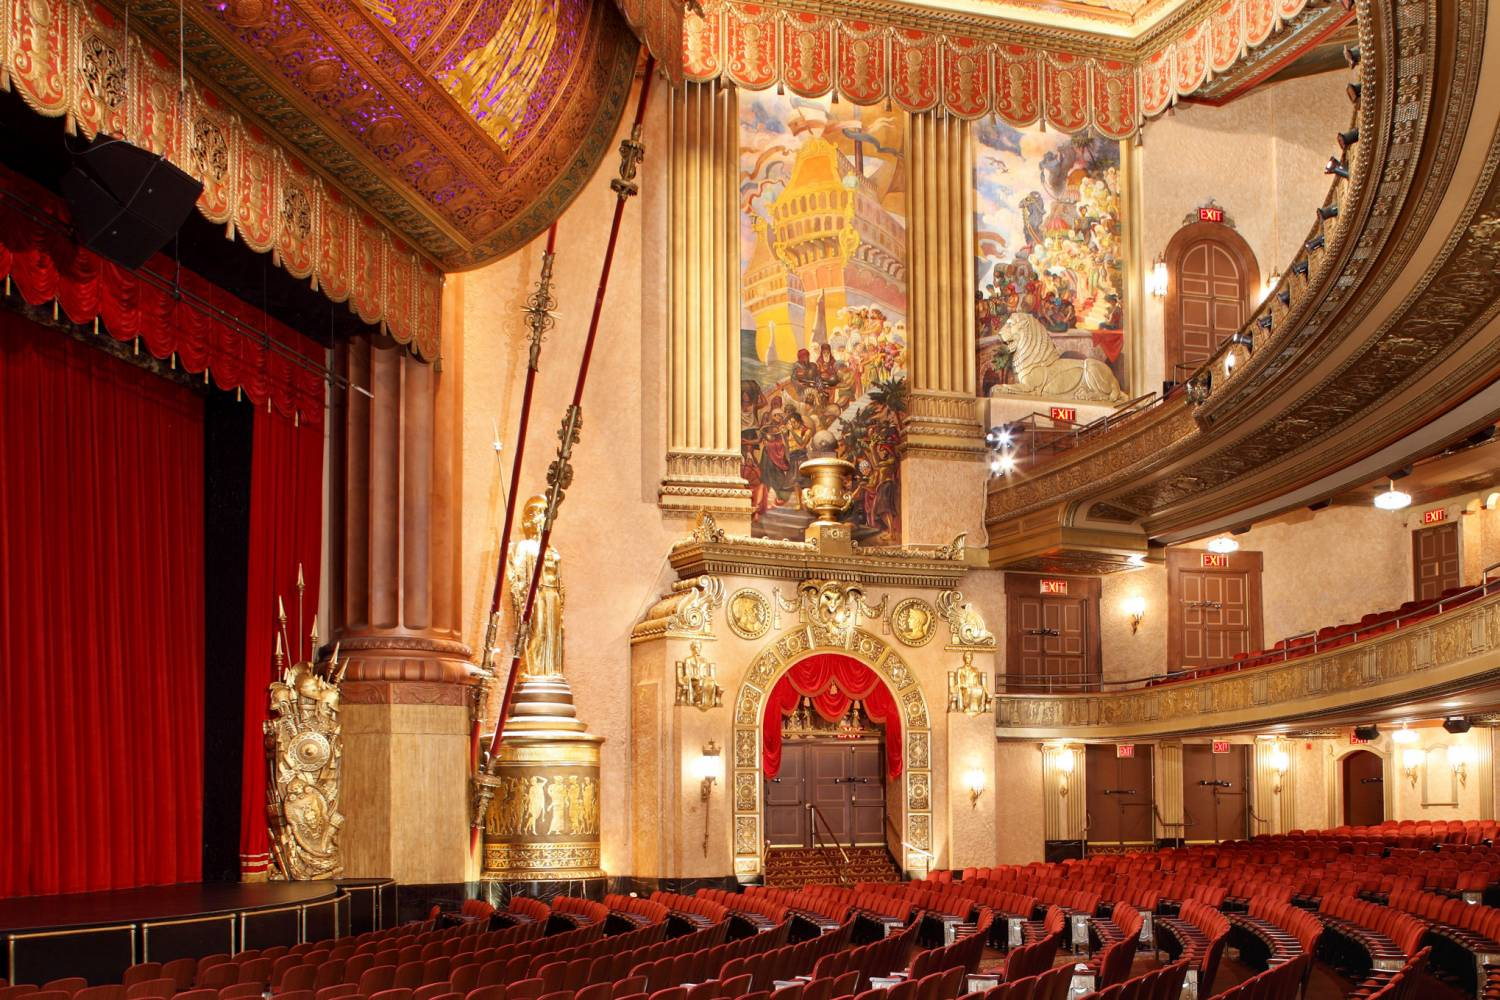 Beacon Theatre, interior